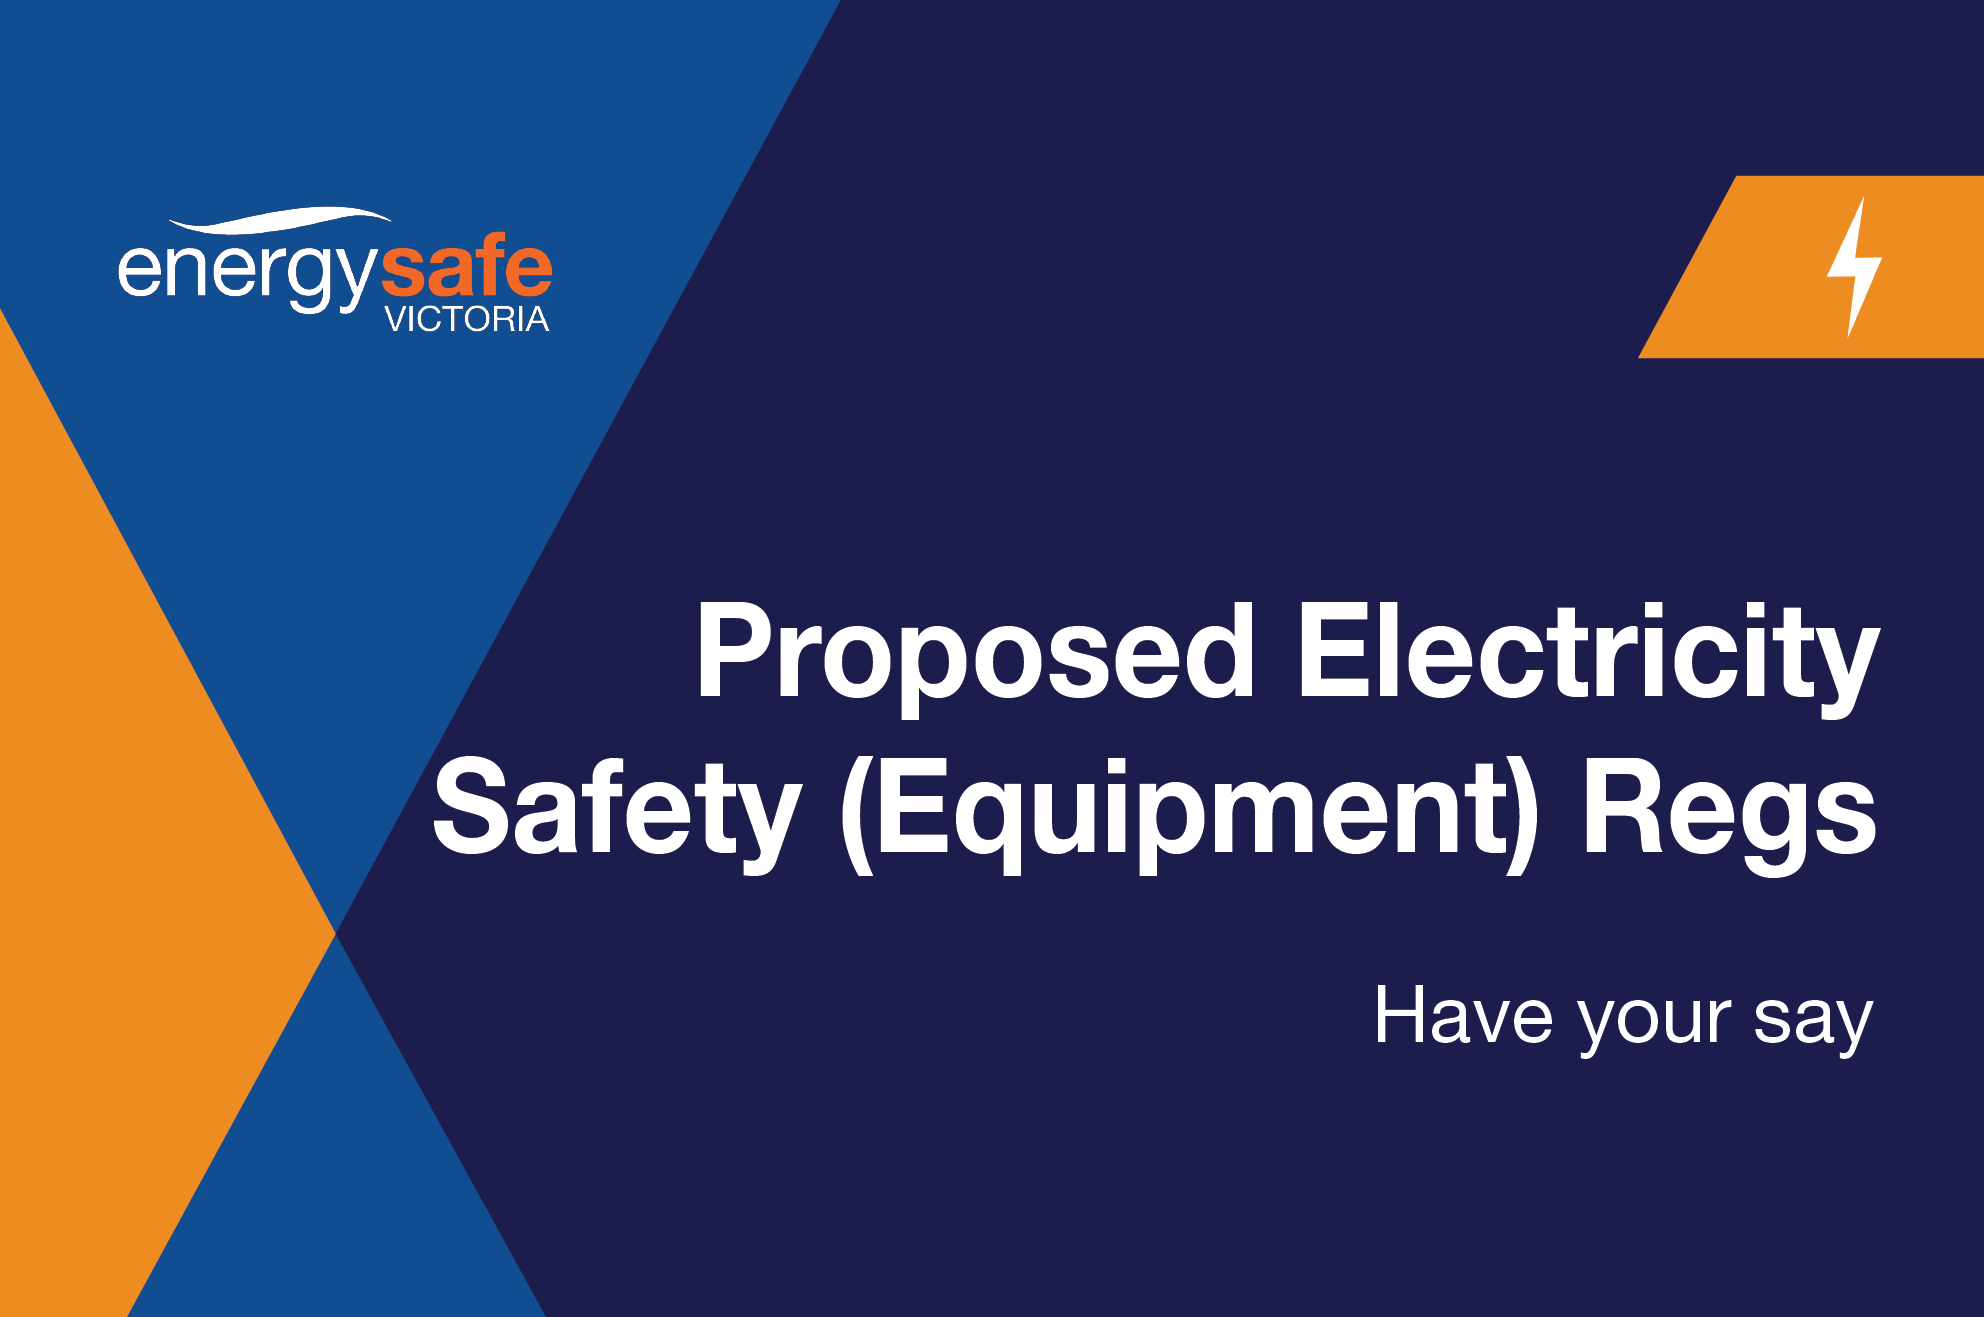 Proposed Electricity Safety Equipment Scheme Regulations Domestic Wiring 2018 Energy Safe Victoria